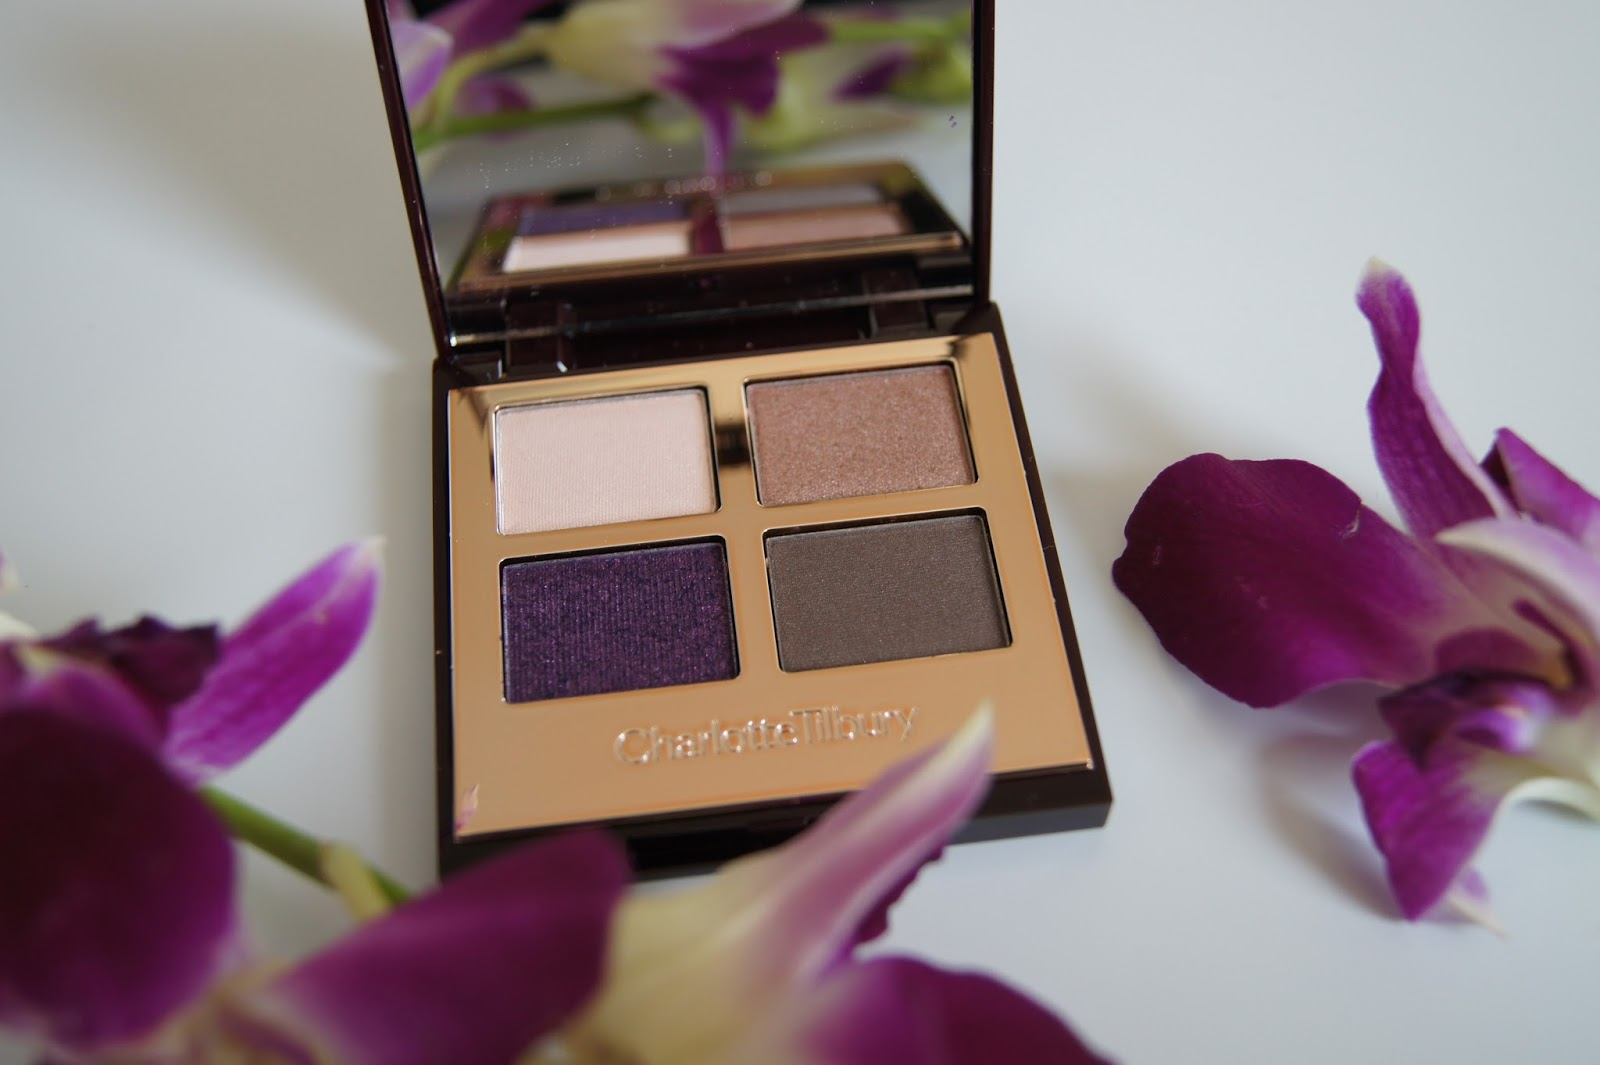 Charlotte Tilbury Luxury Eye Palette in The Glamour Muse review